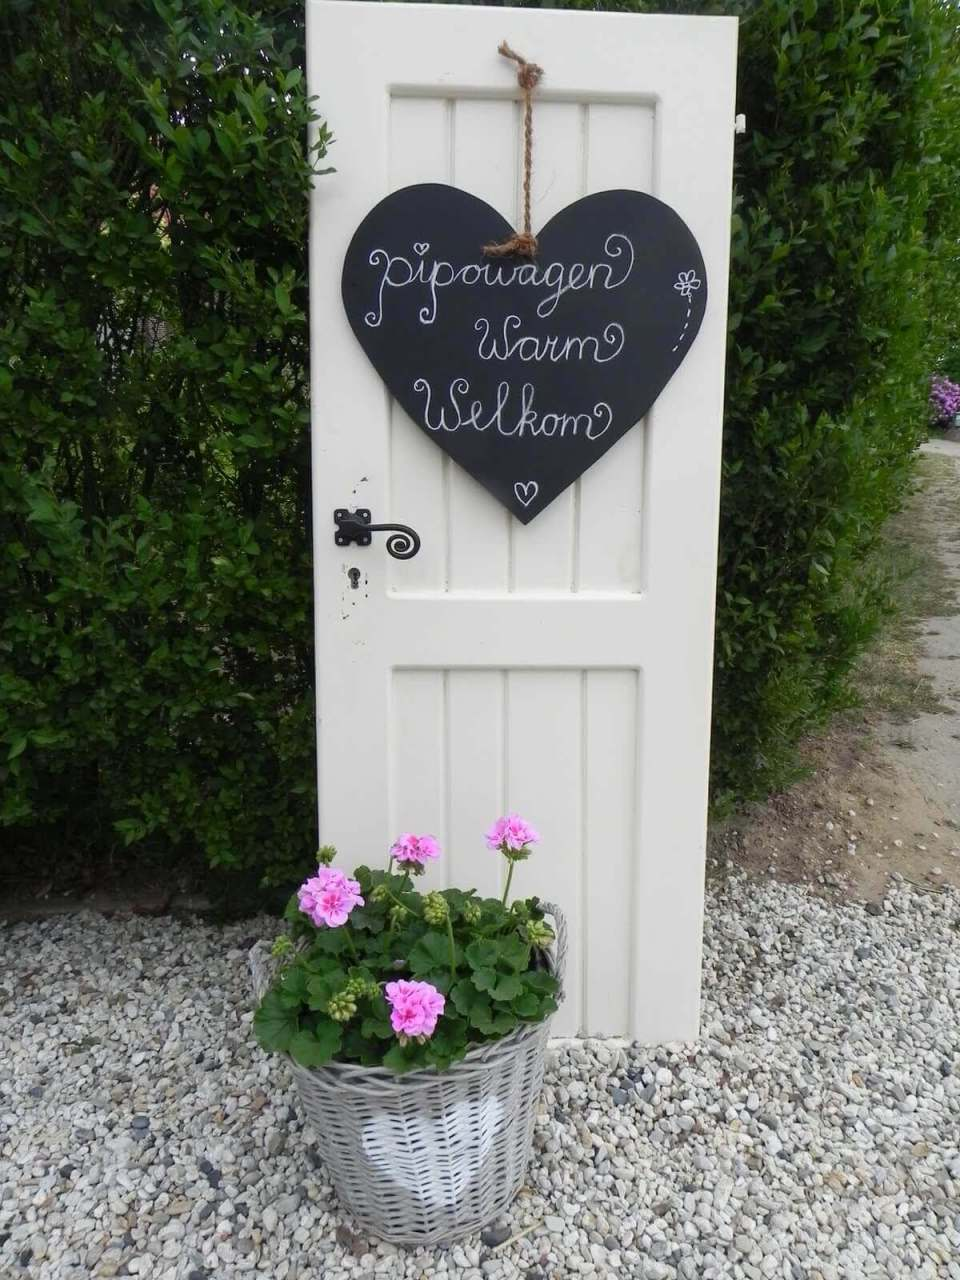 Old Door Outdoor Decor Idea with Chalkboard Signs | Creative Repurposed Old Door Ideas & Projects For Your Backyard